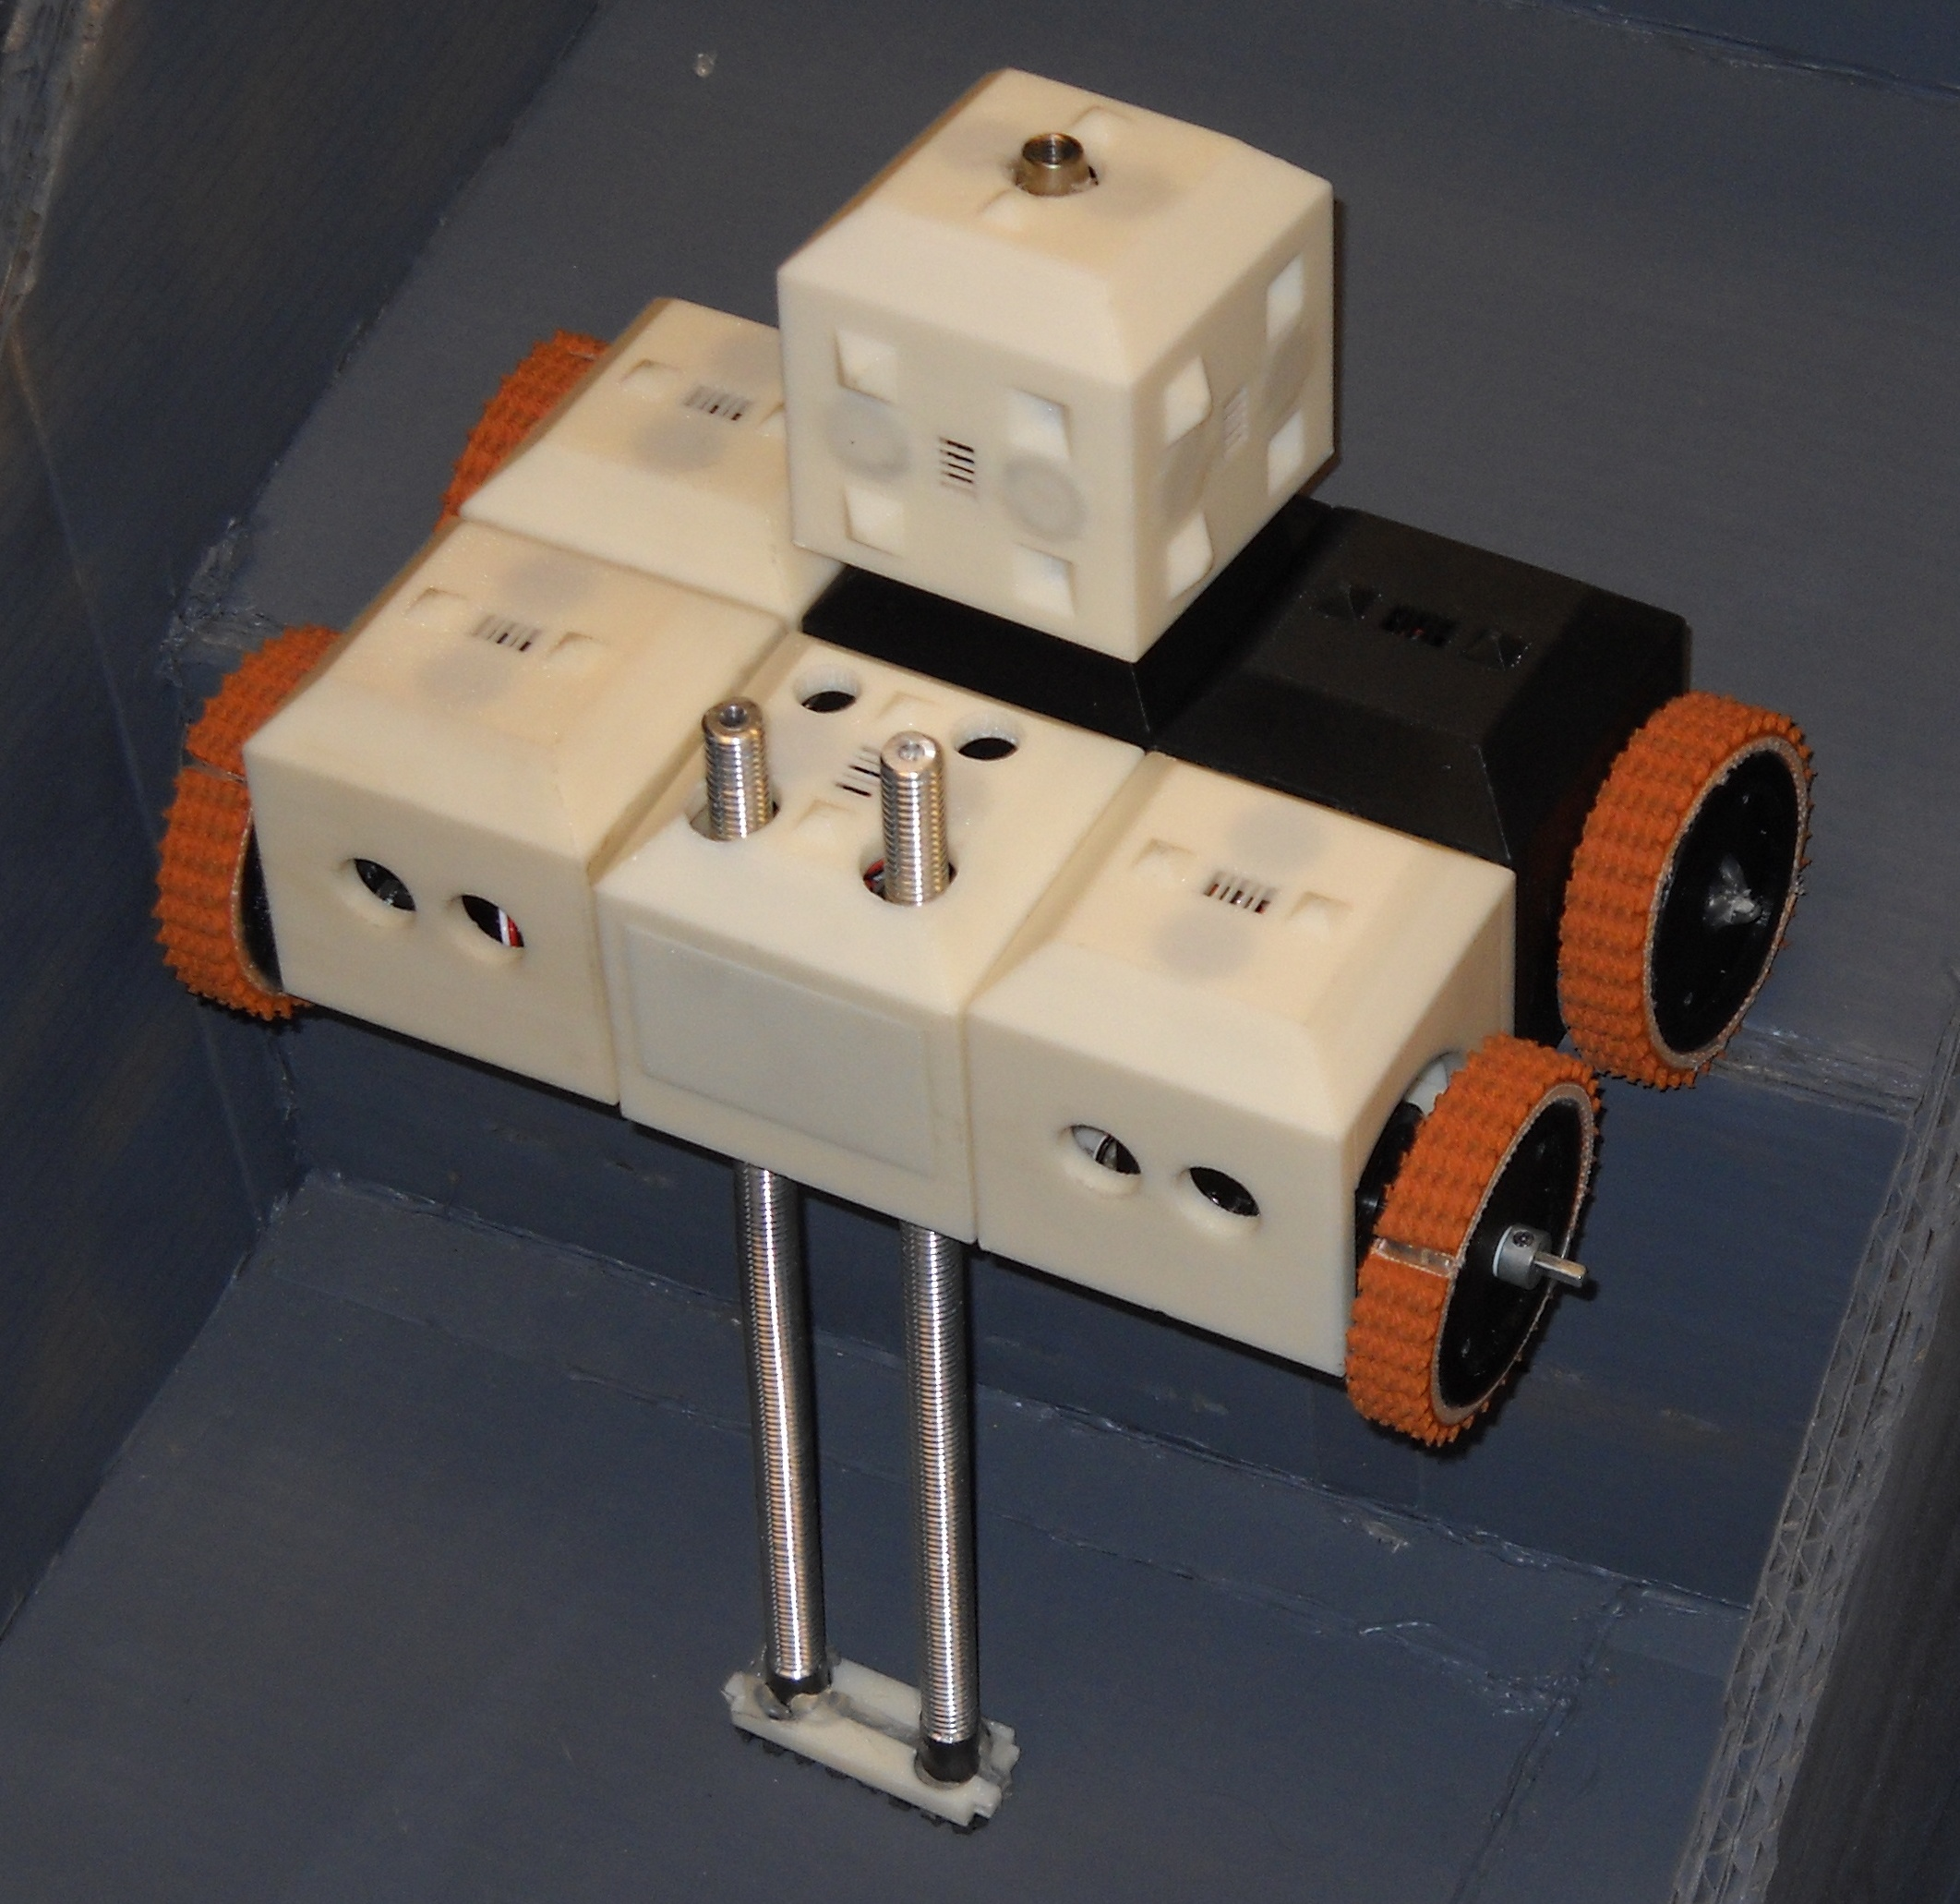 This was the stair climbing, fire-fighting configuration for the system. The stair climbing mechanism was two motor-powered, threaded rods.